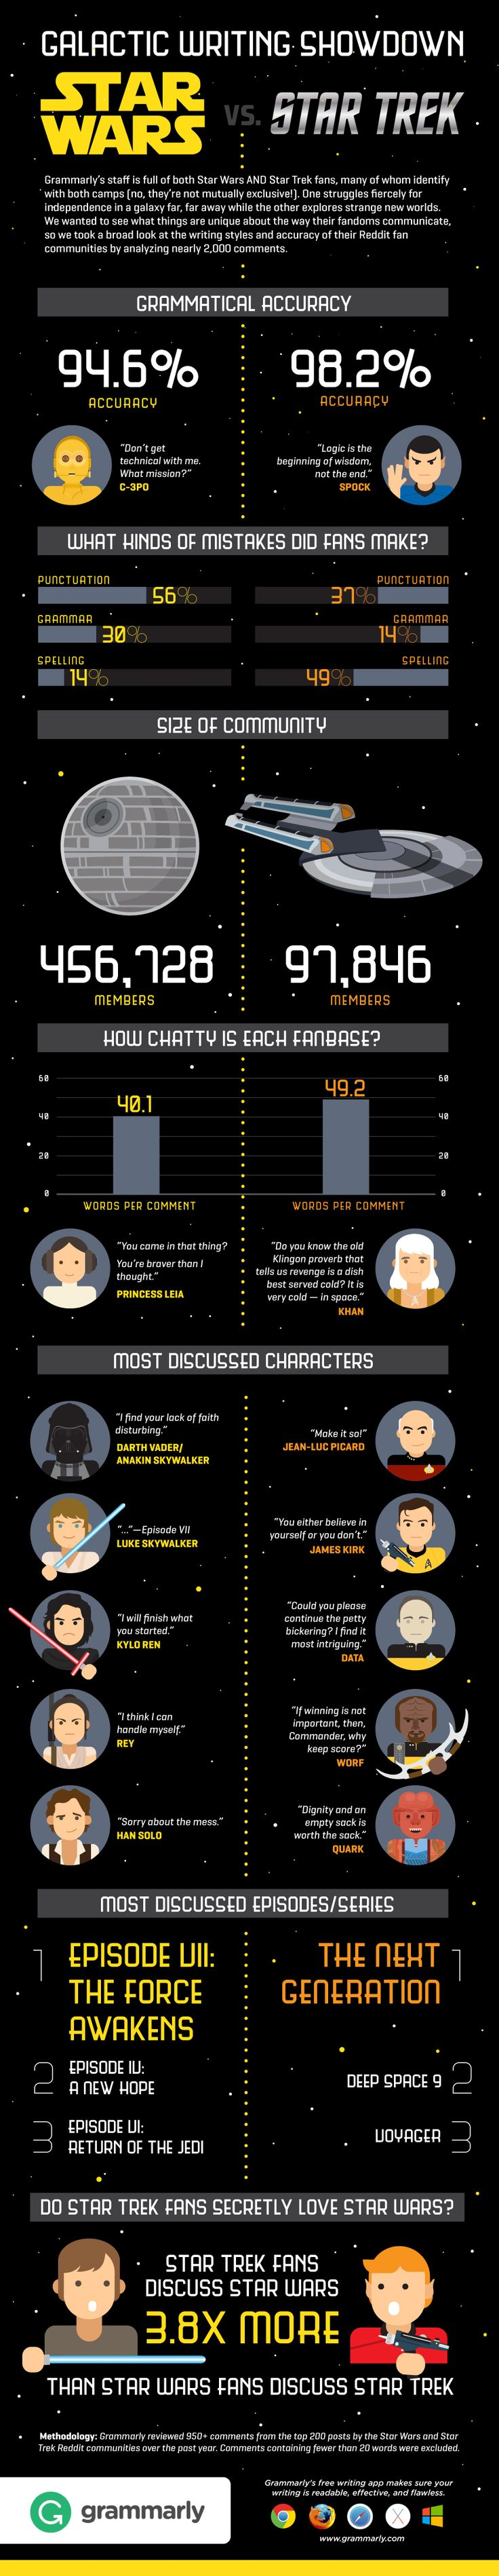 star wars vs star trek For starters, there's just so much more star trek to consume than star warsincluding the star wars prequels and jj abrams' 2015 flick, that makes seven in-cannon movies.